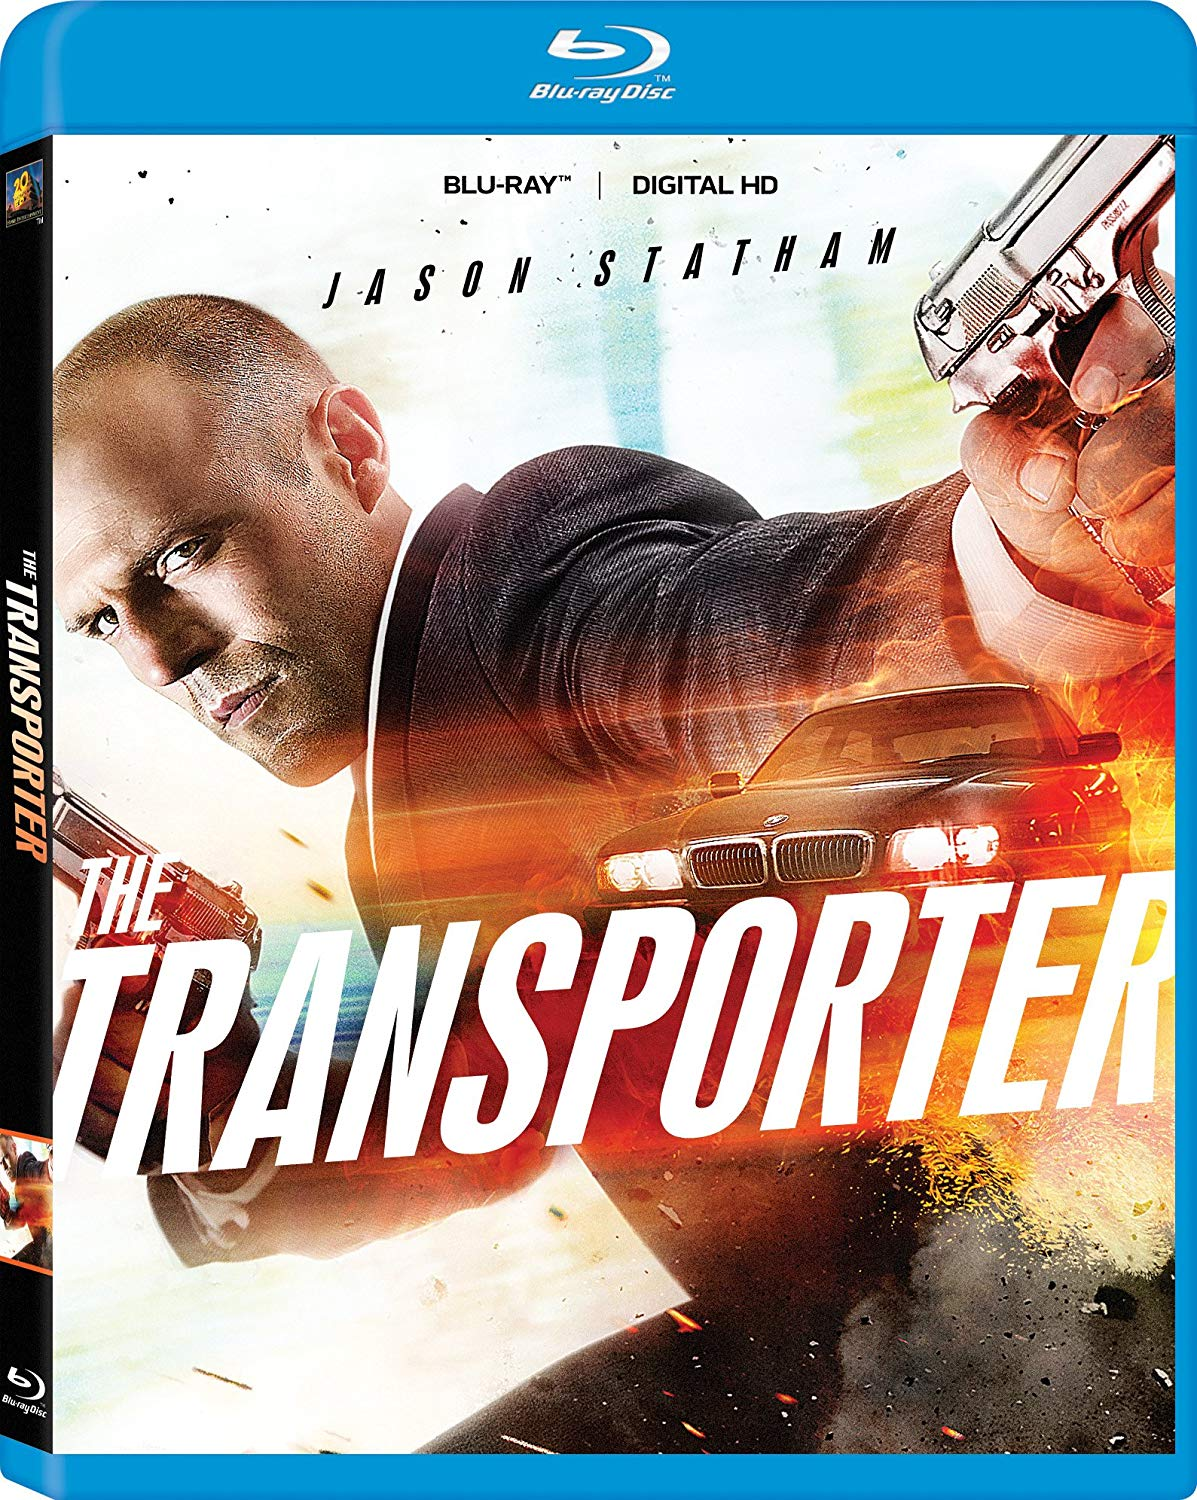 The.Transporter.2002.German.DTS.DL.1080p.BluRay.x264-DETAiLS